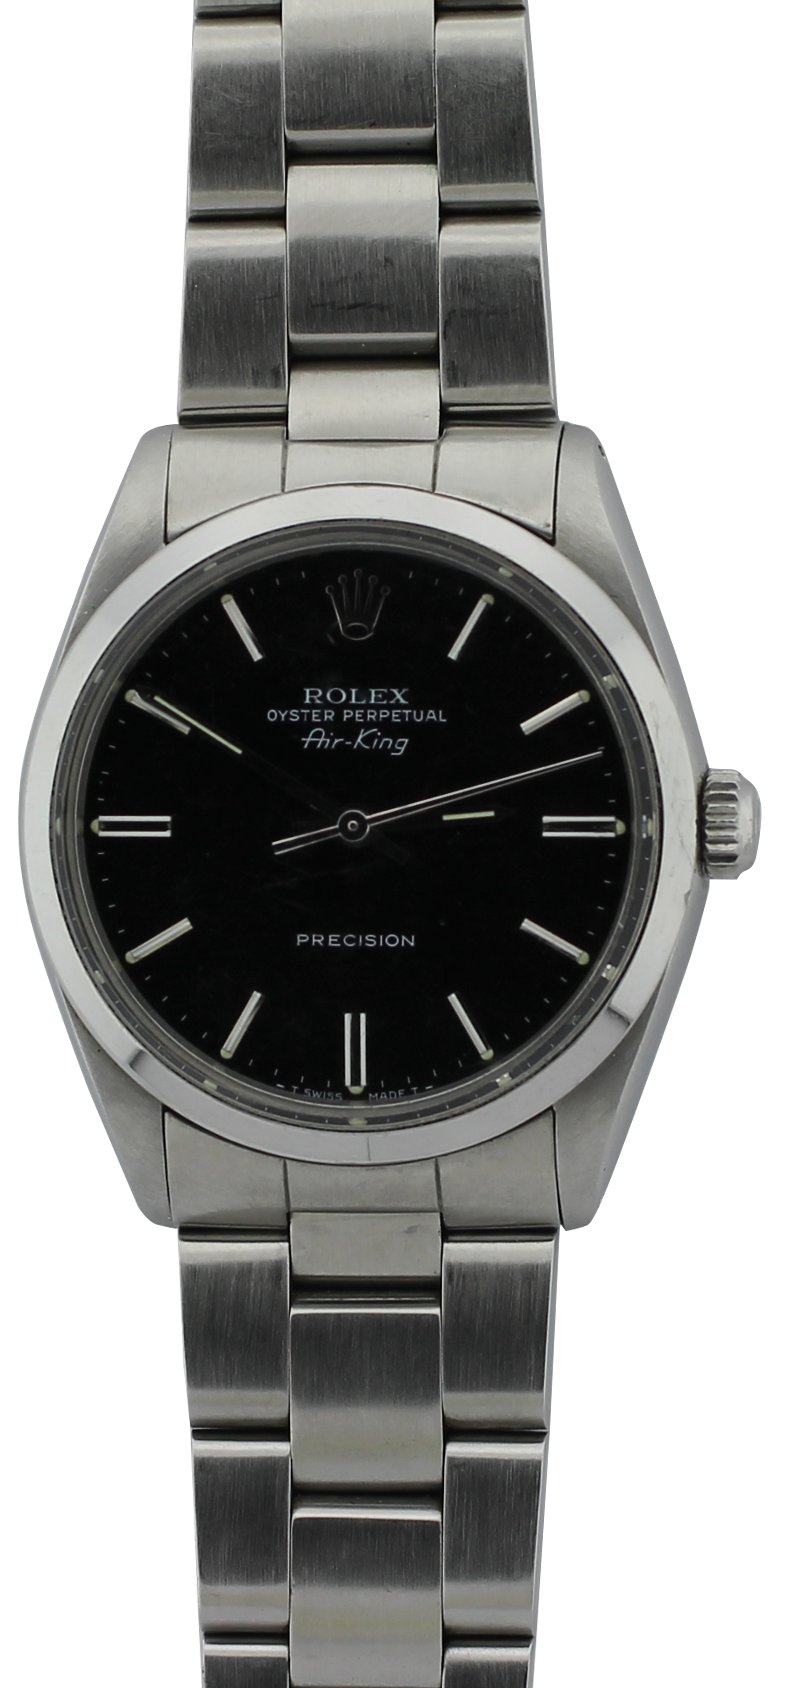 Rolex Steel Black Dial Air-King 5500 Complete with Box & Paper